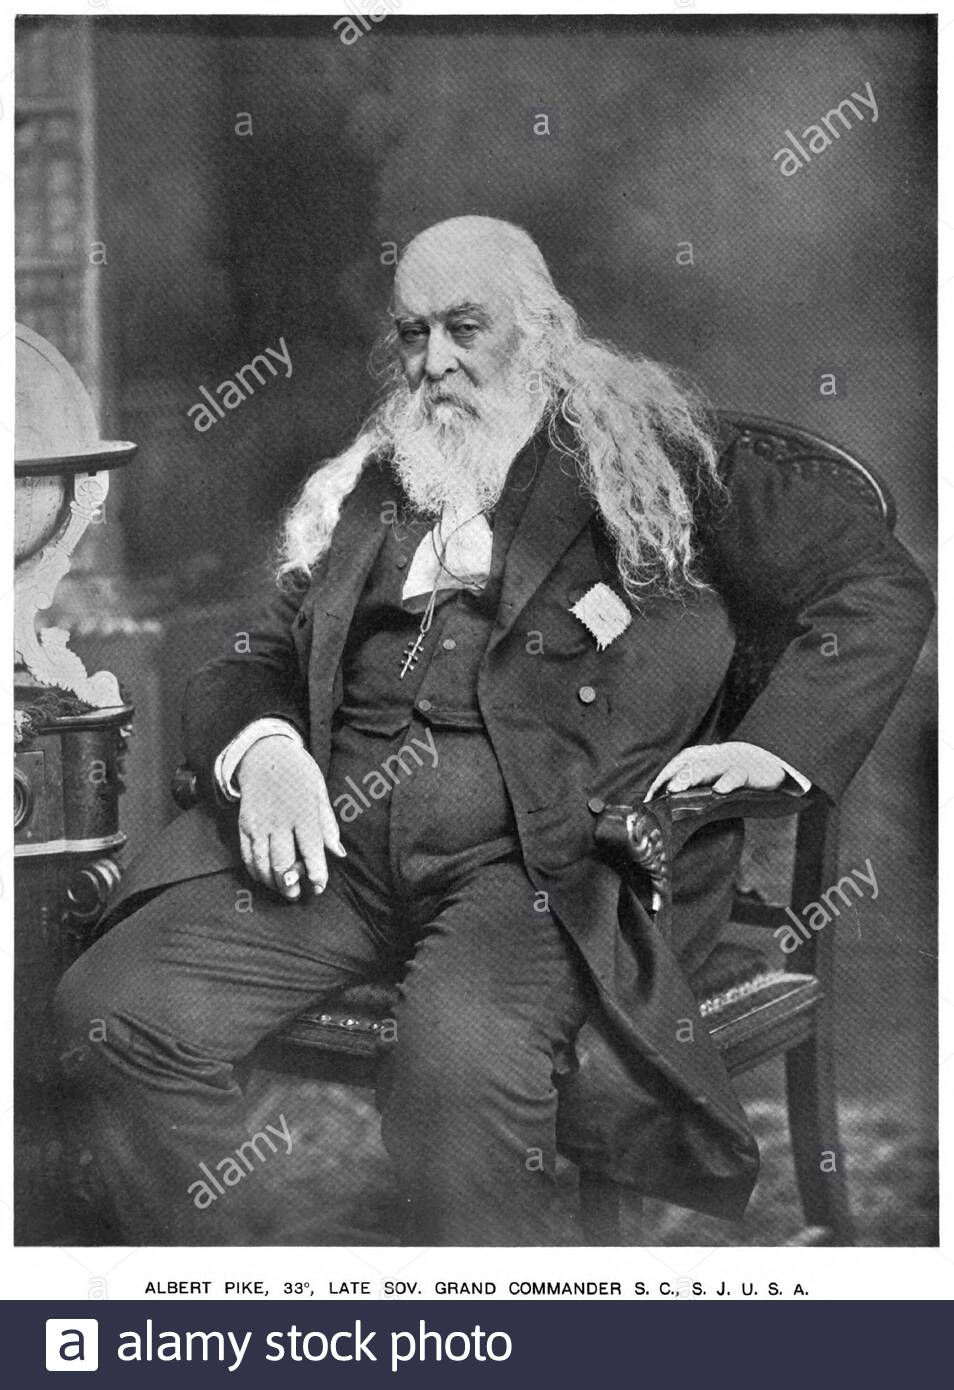 Albert Pike portrait, 1809 – 1891, was an American author, poet and Freemason Sovereign Grand Commander of the Scottish Rite's Southern Jurisdiction, circa late 1800s Stock Photo